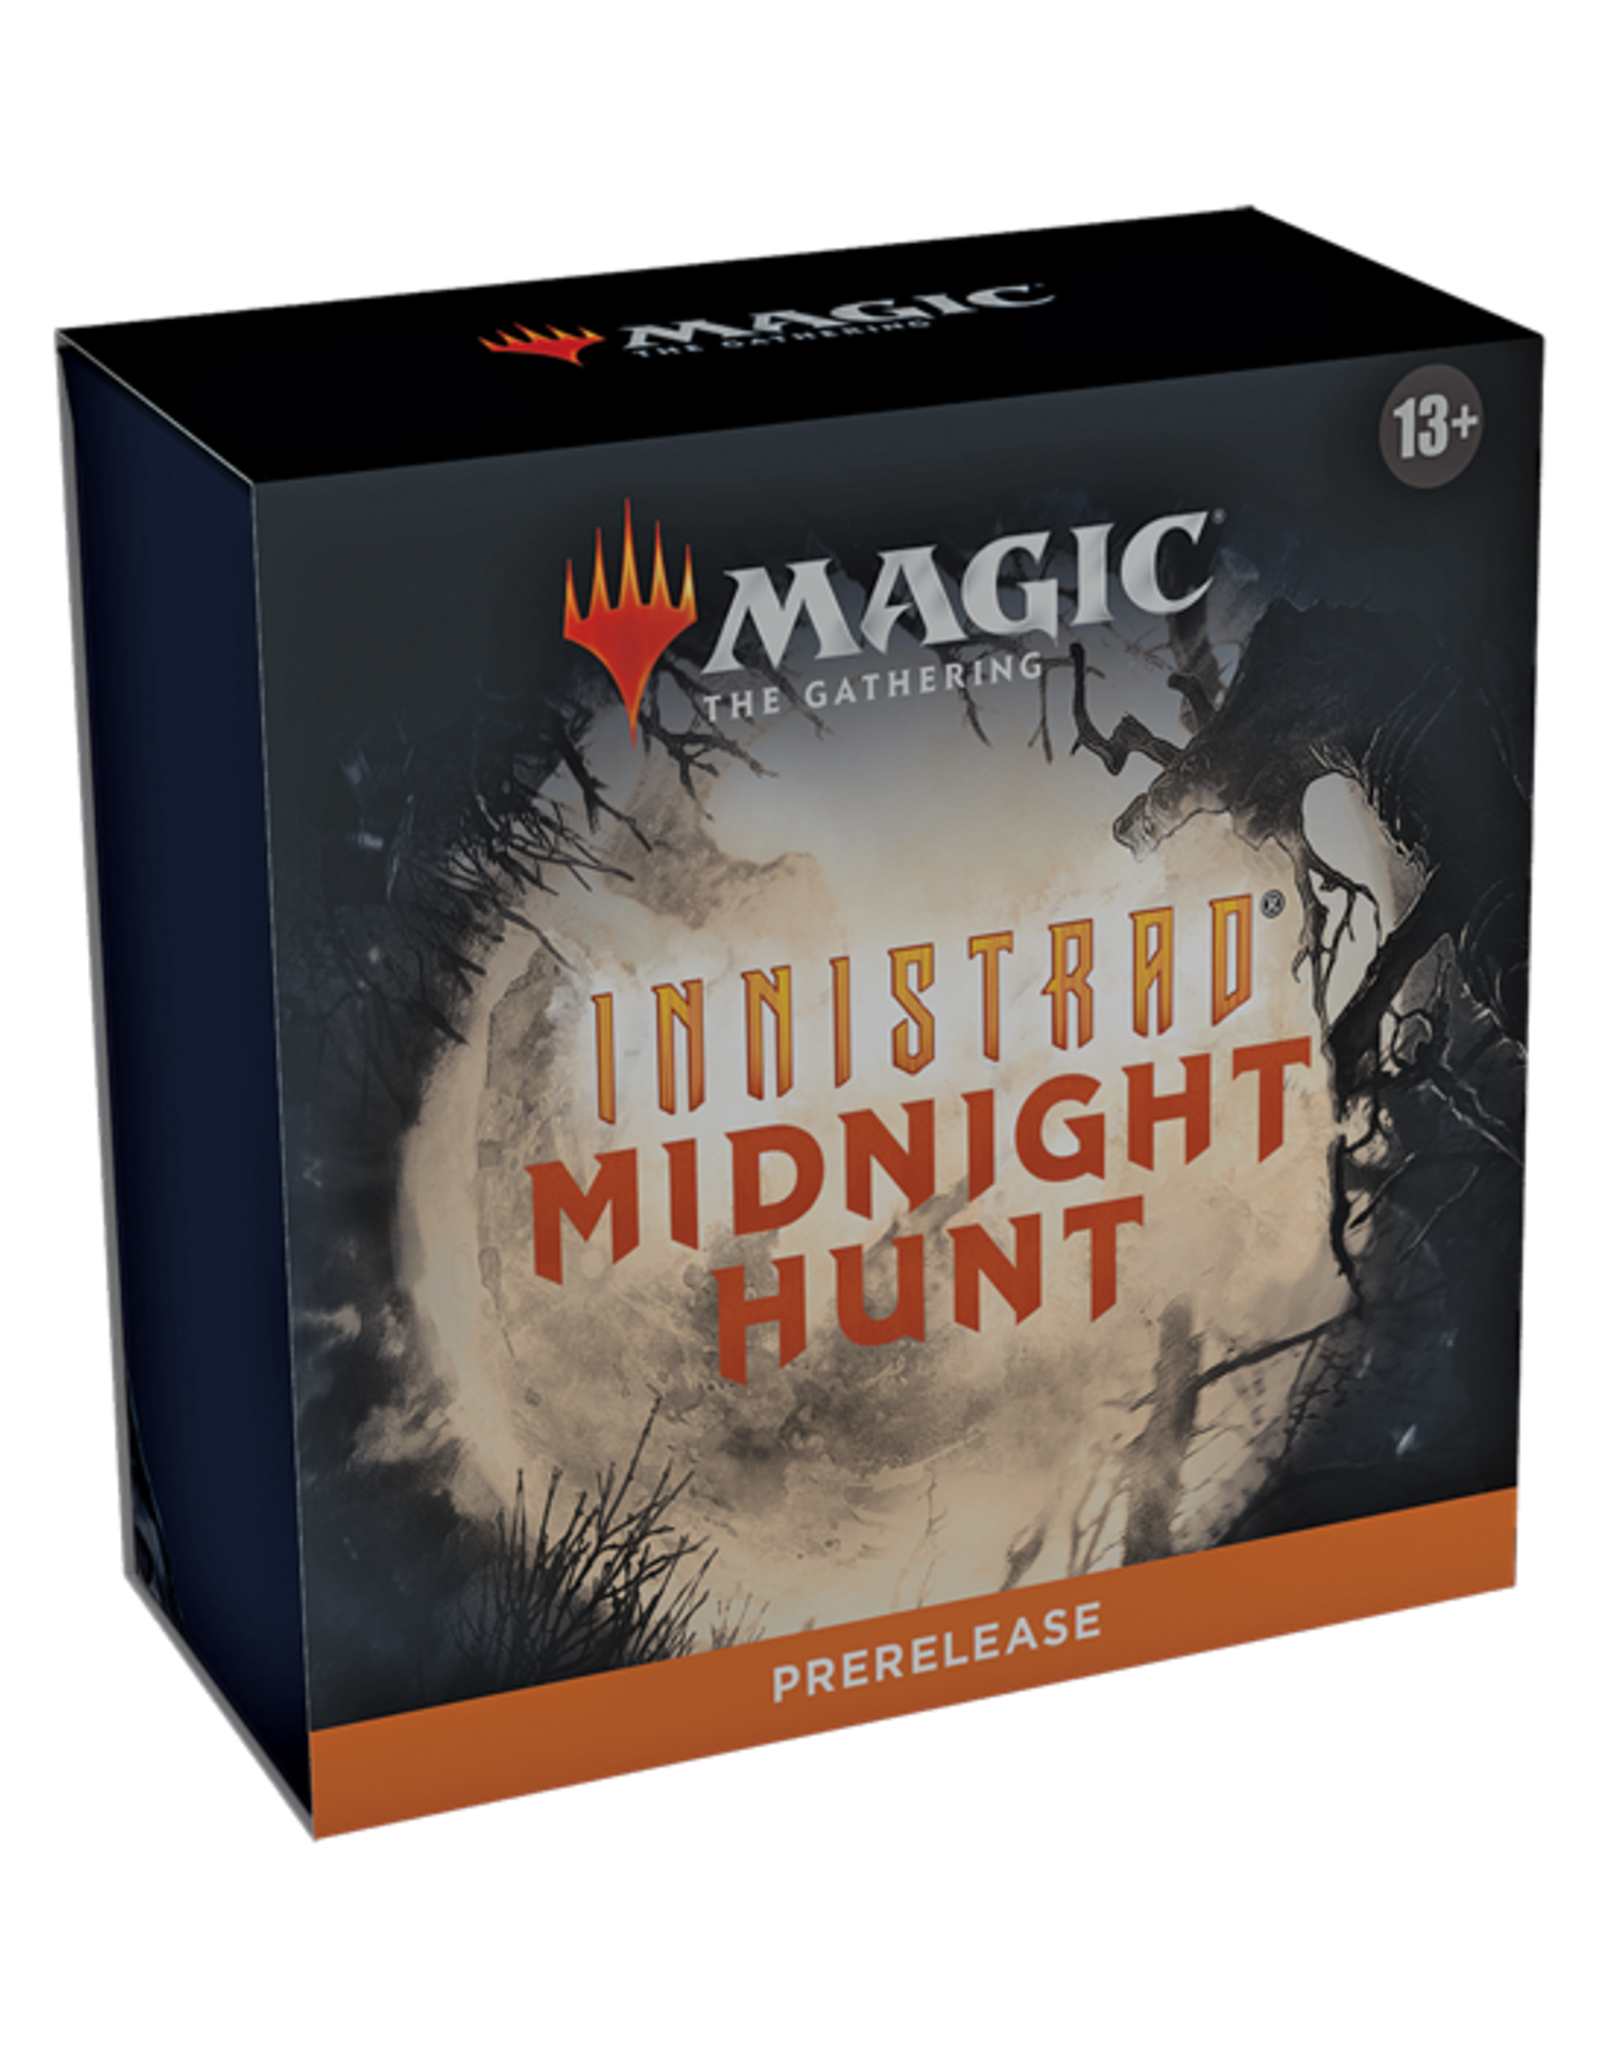 Magic: The Gathering Magic: The Gathering - Innistrad: Midnight Hunt - Prerelease Pack